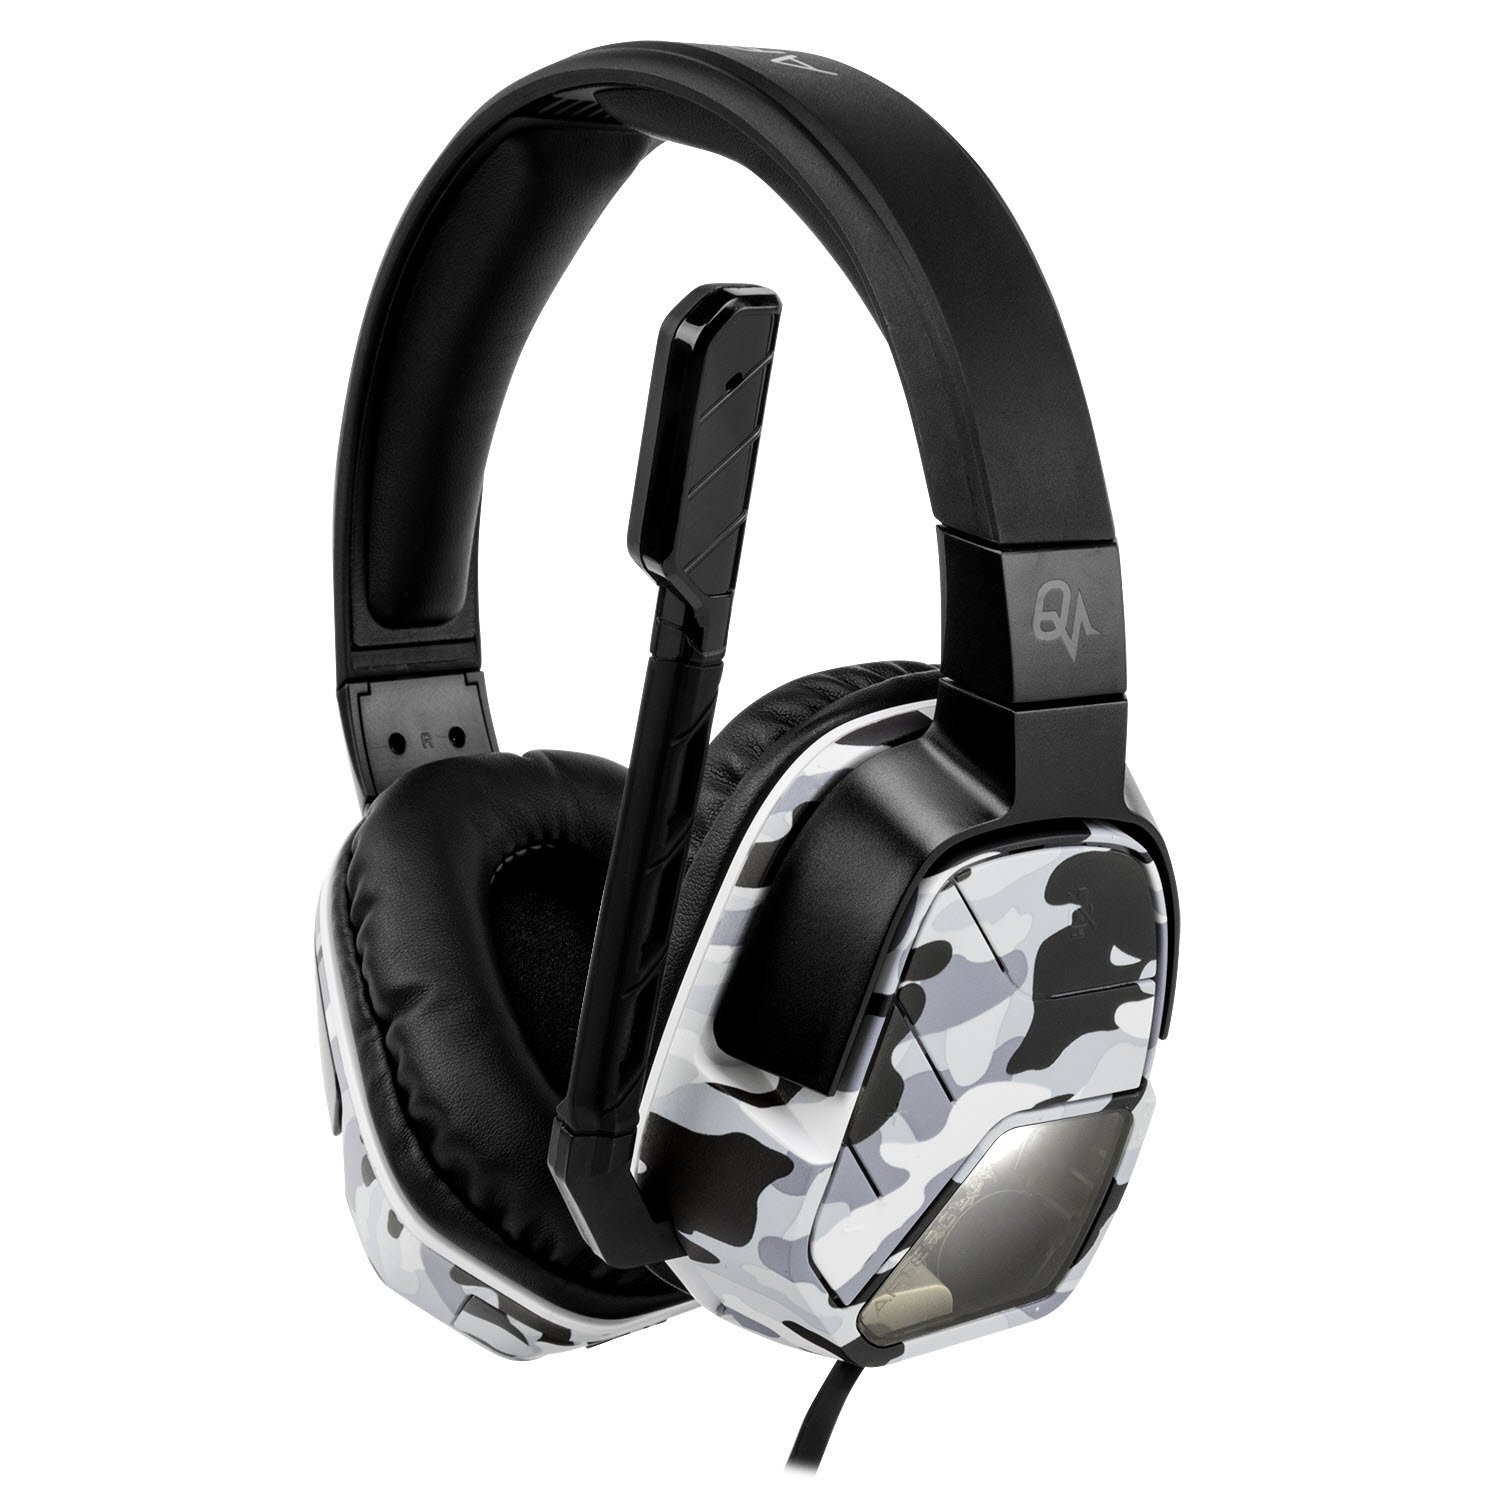 PDP - Auricular Stereo Afterglow Lvl 5 Plus, Color Camo Blanco (PS4): Amazon.es: Videojuegos